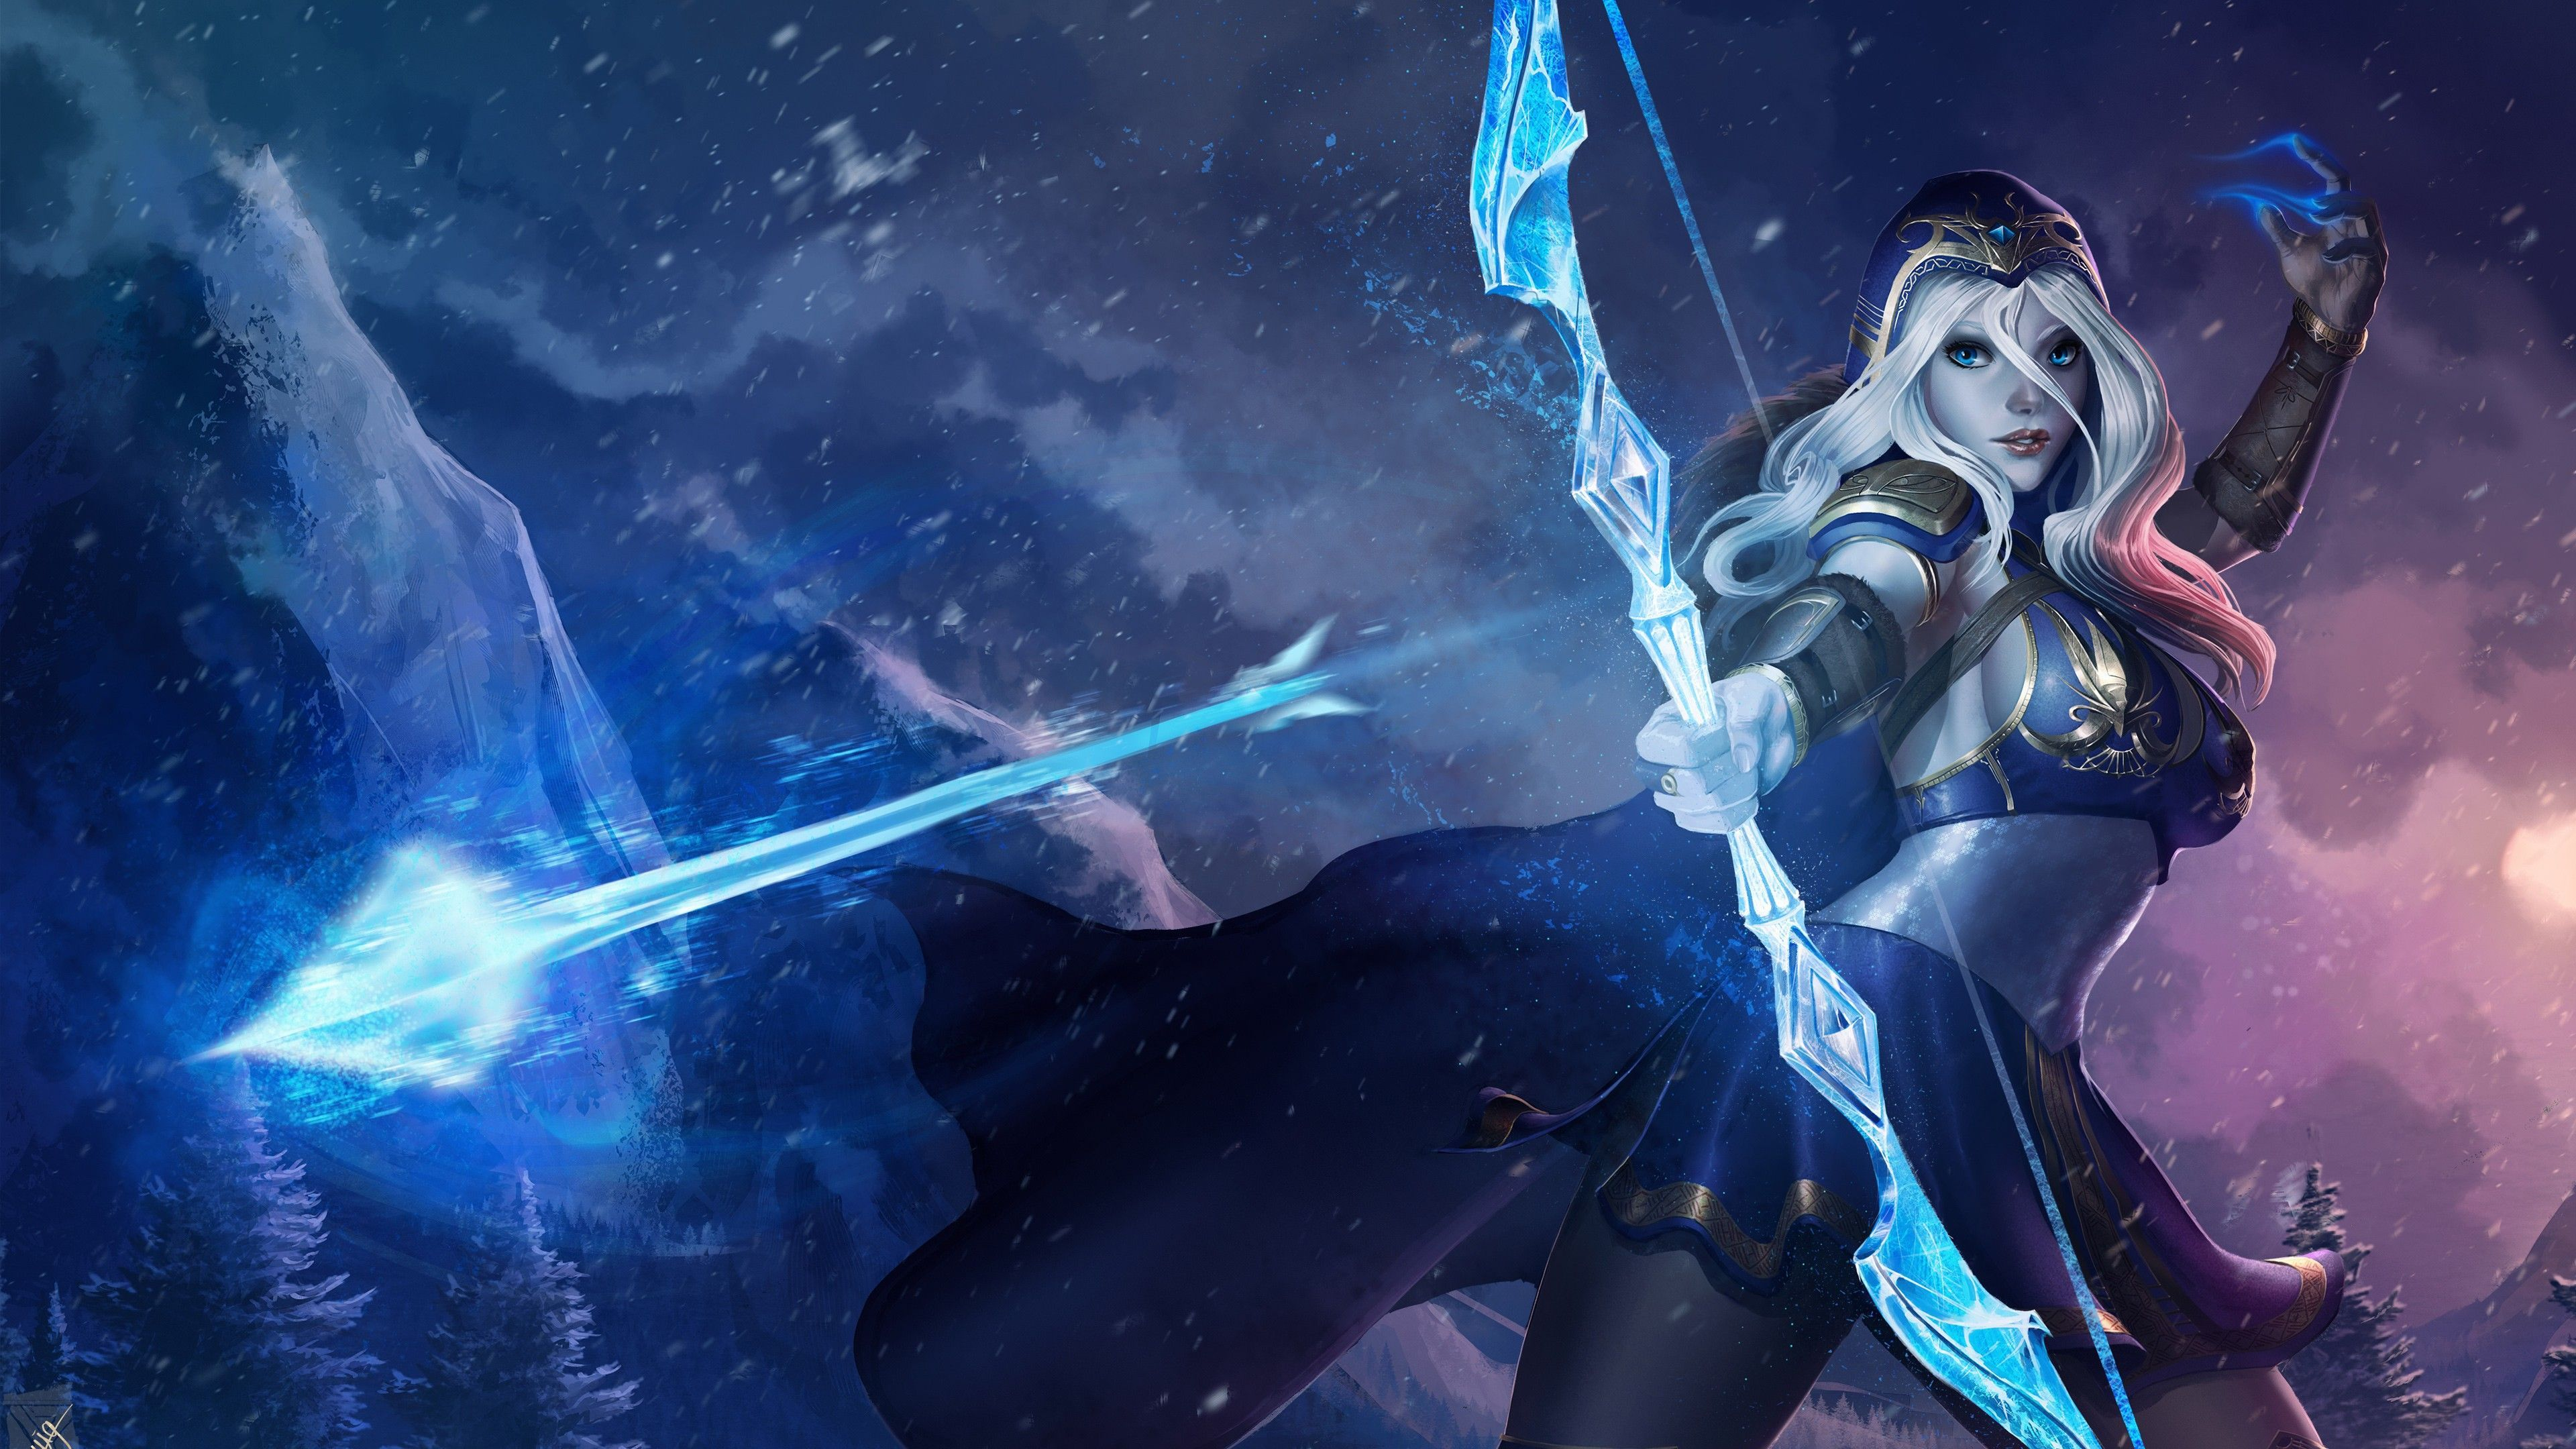 Ashe League Of Legends 4k Wallpaper Com Imagens Lol League Of